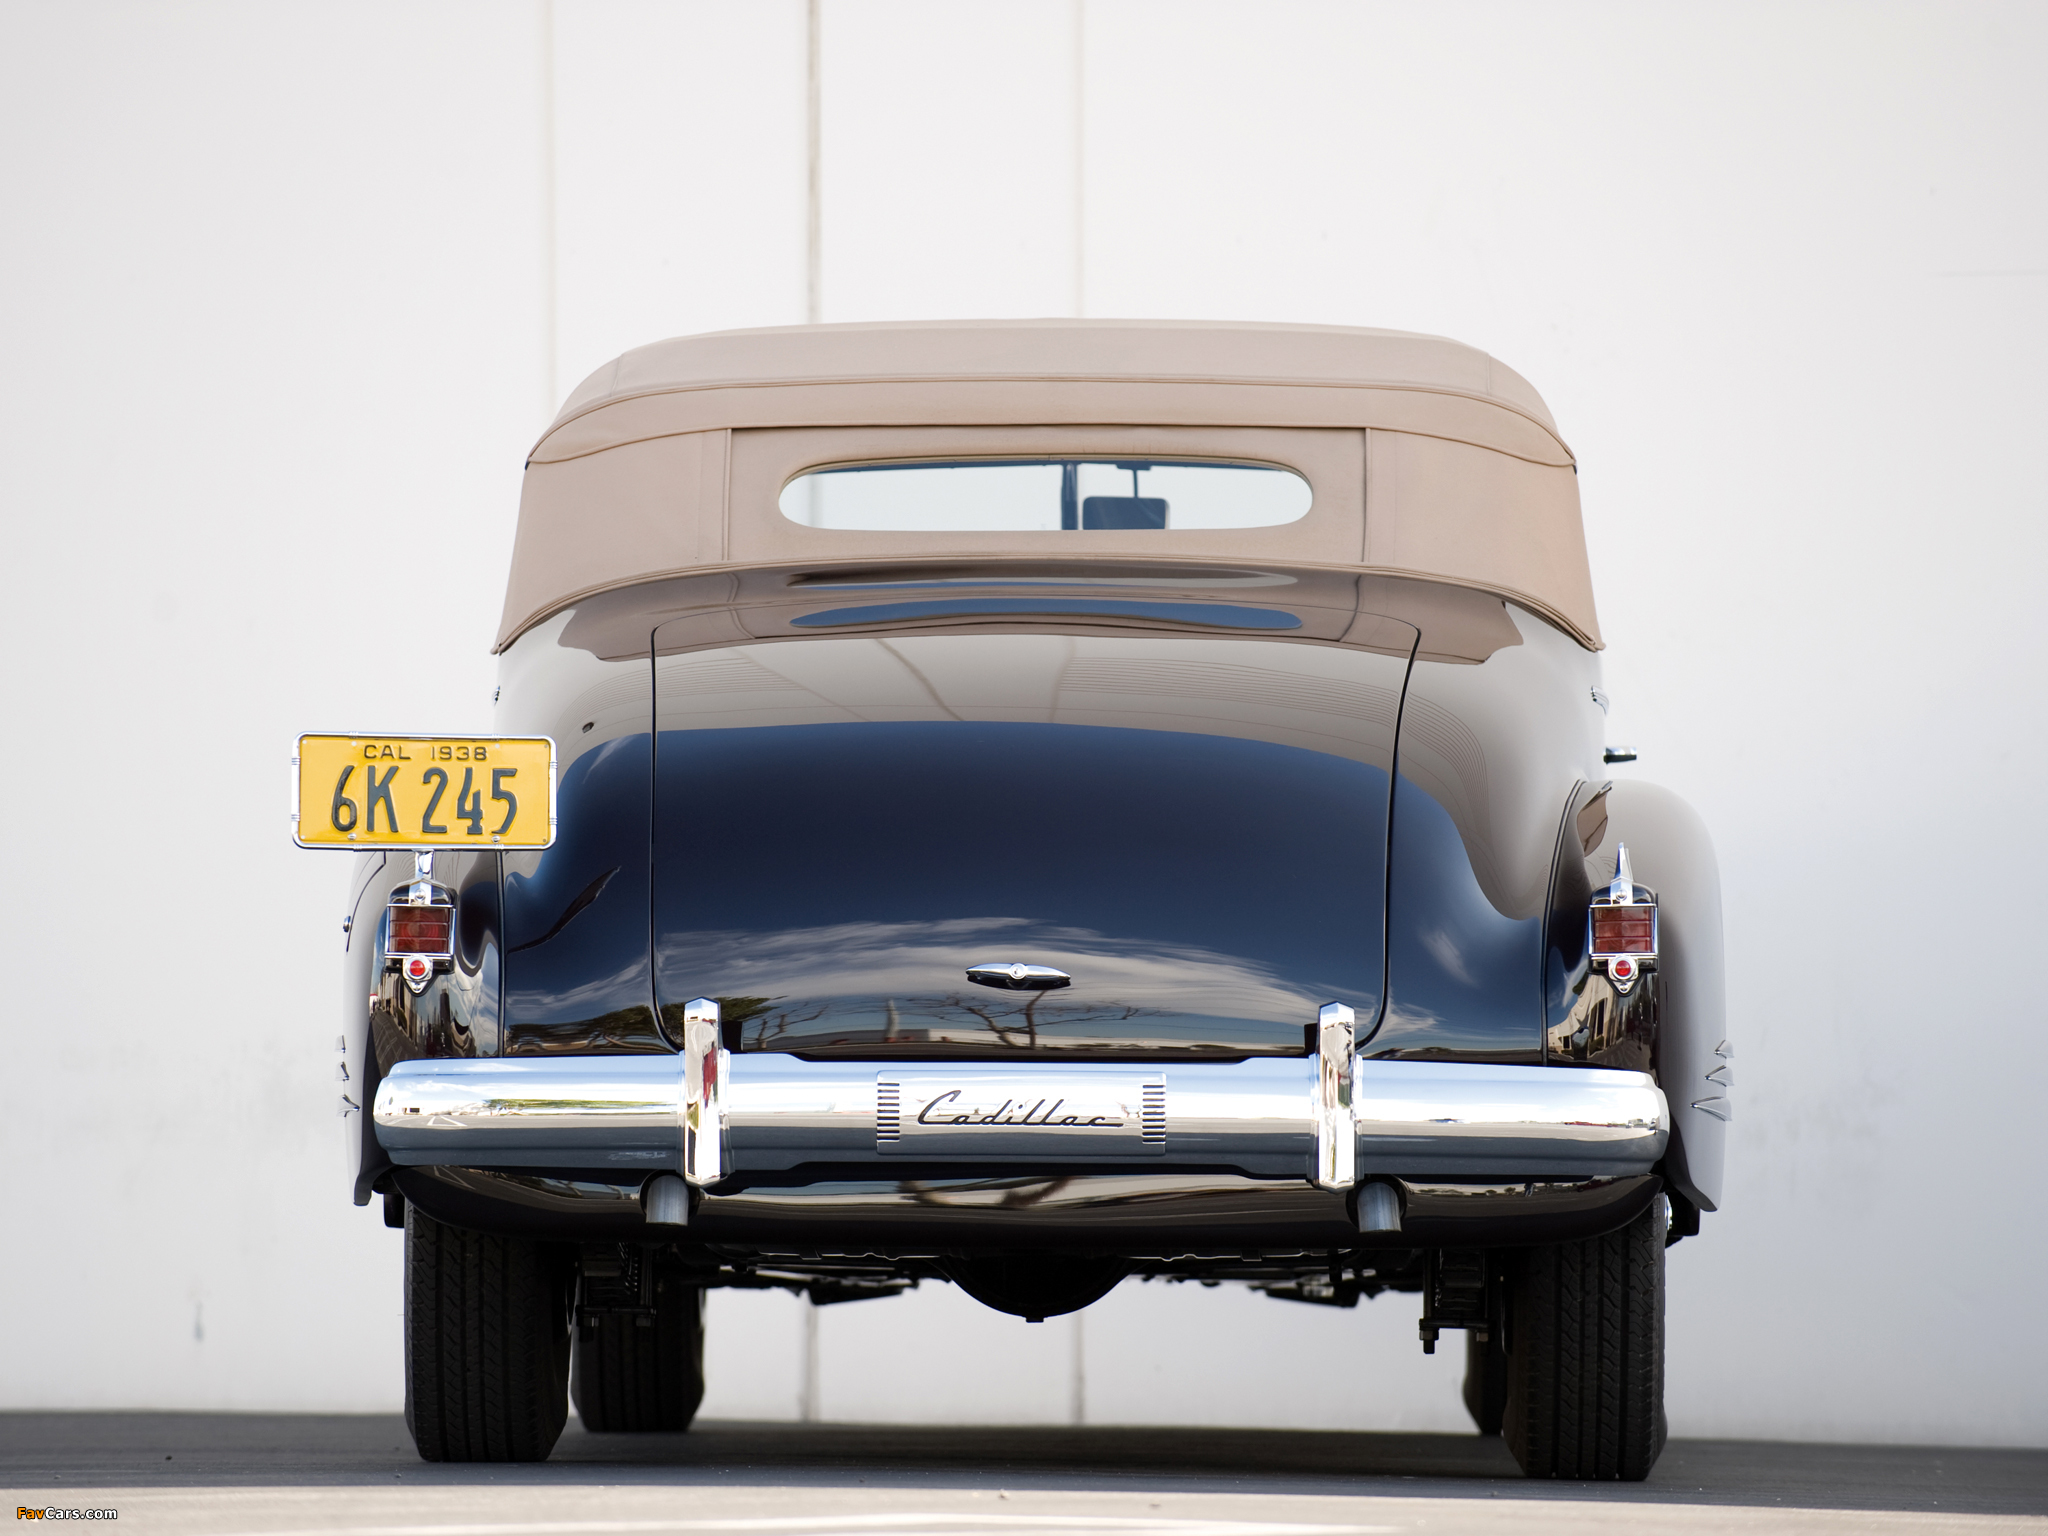 Cadillac V16 Series 90 Convertible Coupe 1938 images (2048 x 1536)